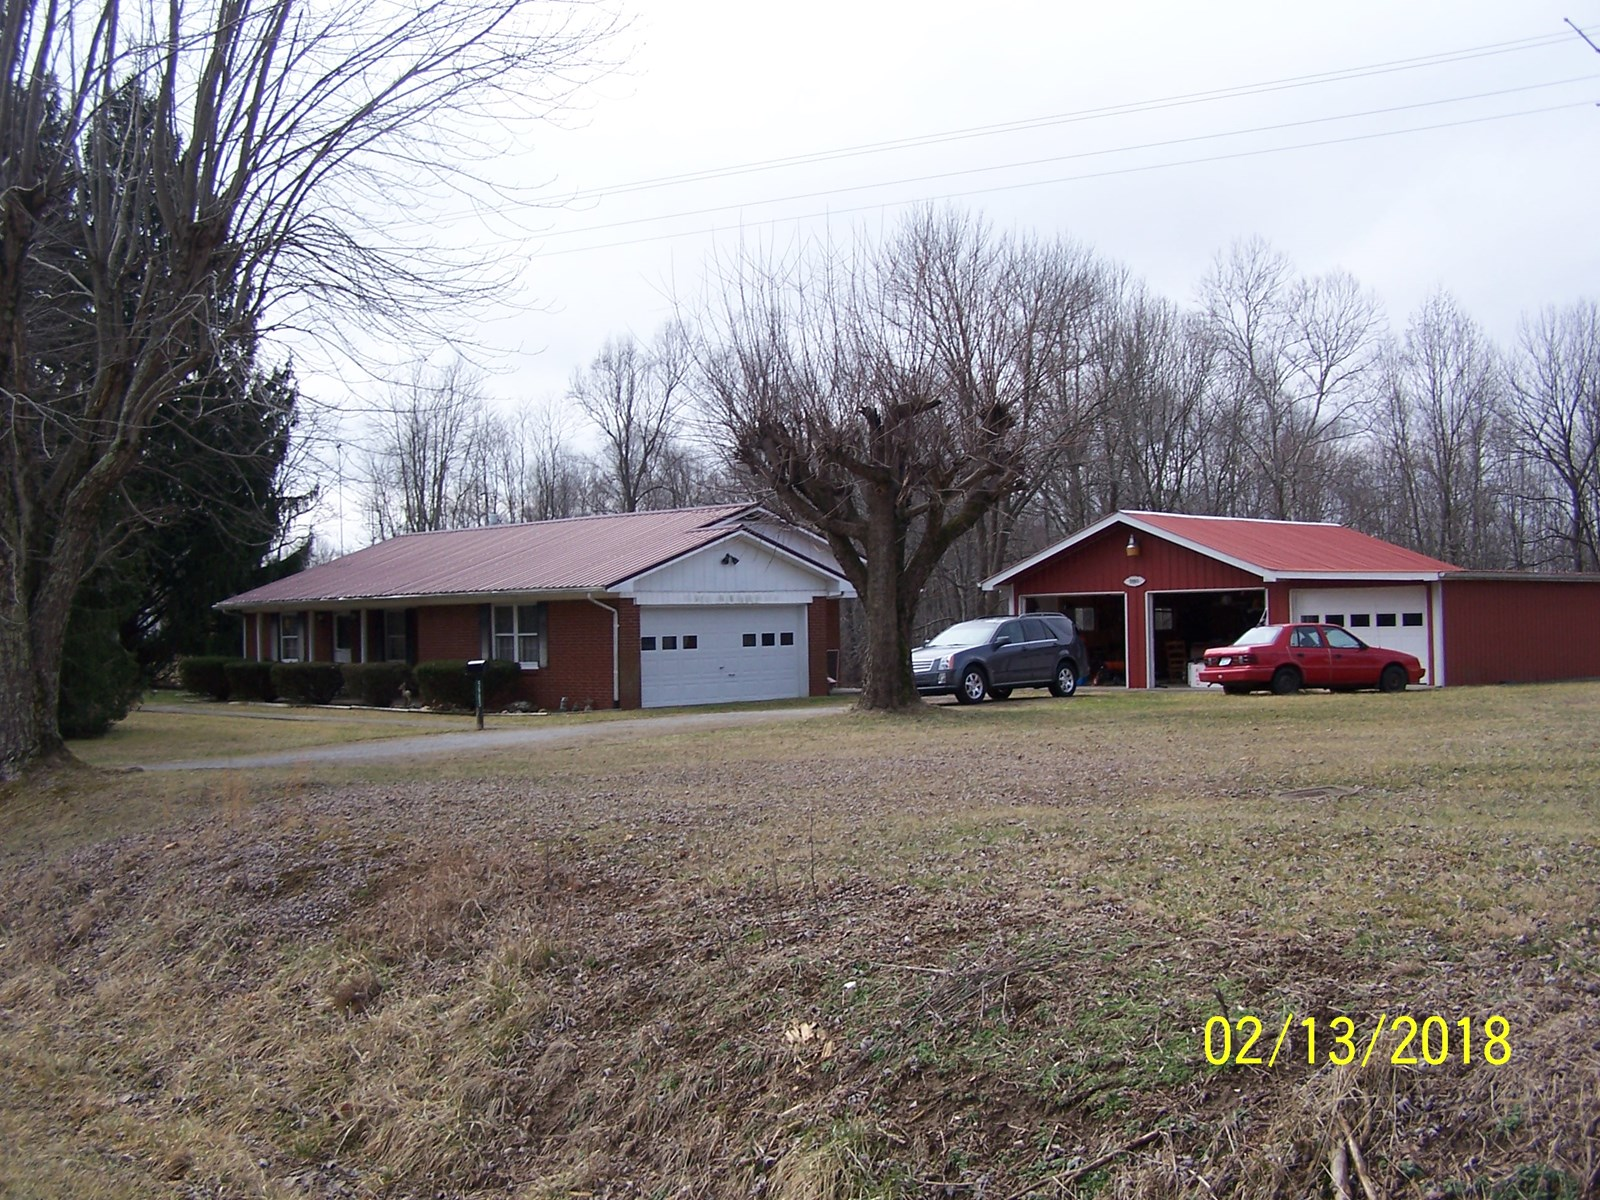 BRICK HOME WITH GARAGE & MOBILE HOME - KINGS MTN. KENTUCKY